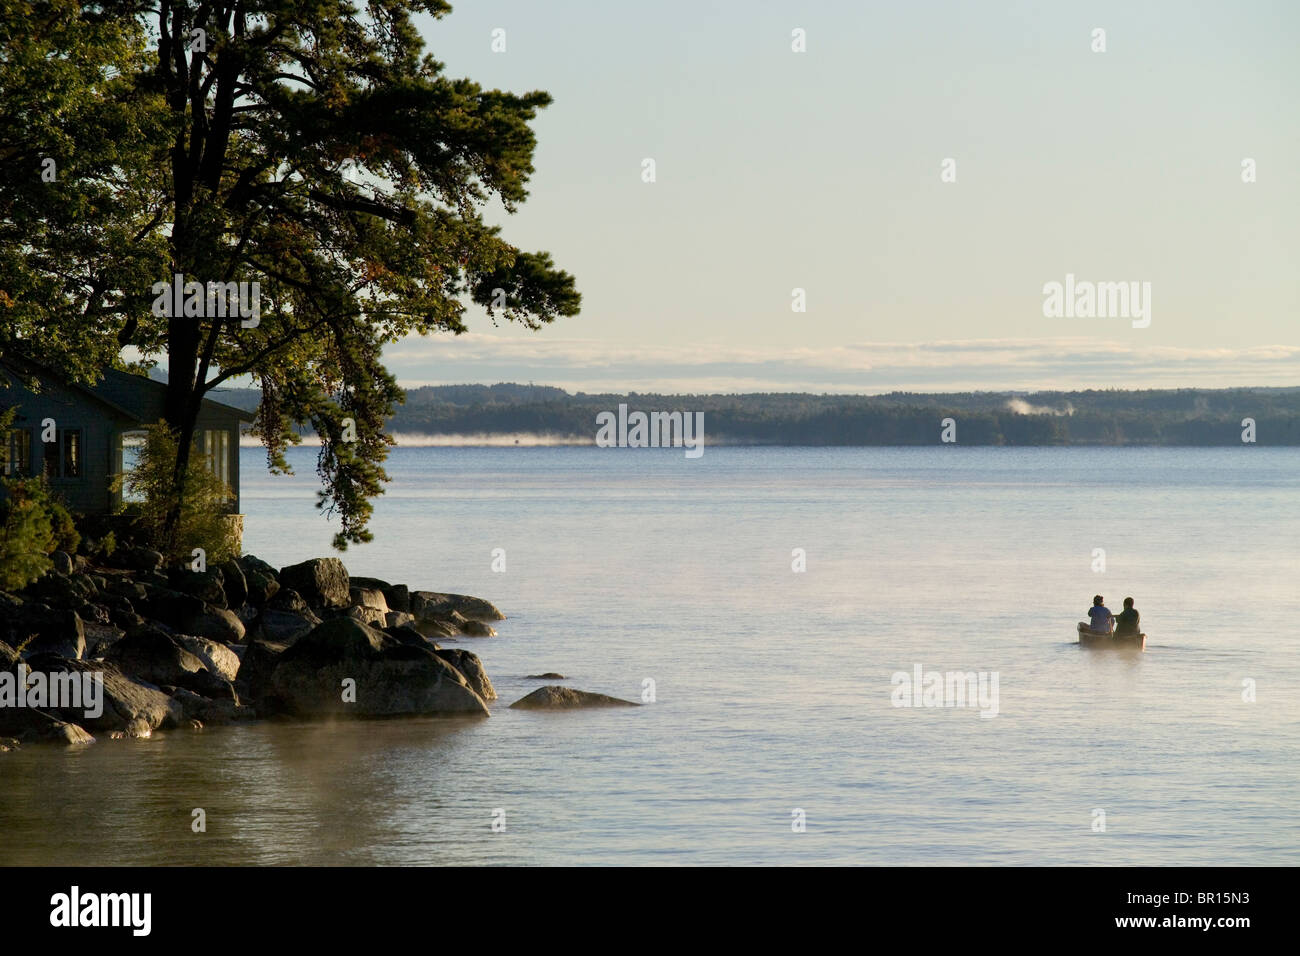 A canoe plies the waters in the morning mist of Sebago Lake in Maine. - Stock Image